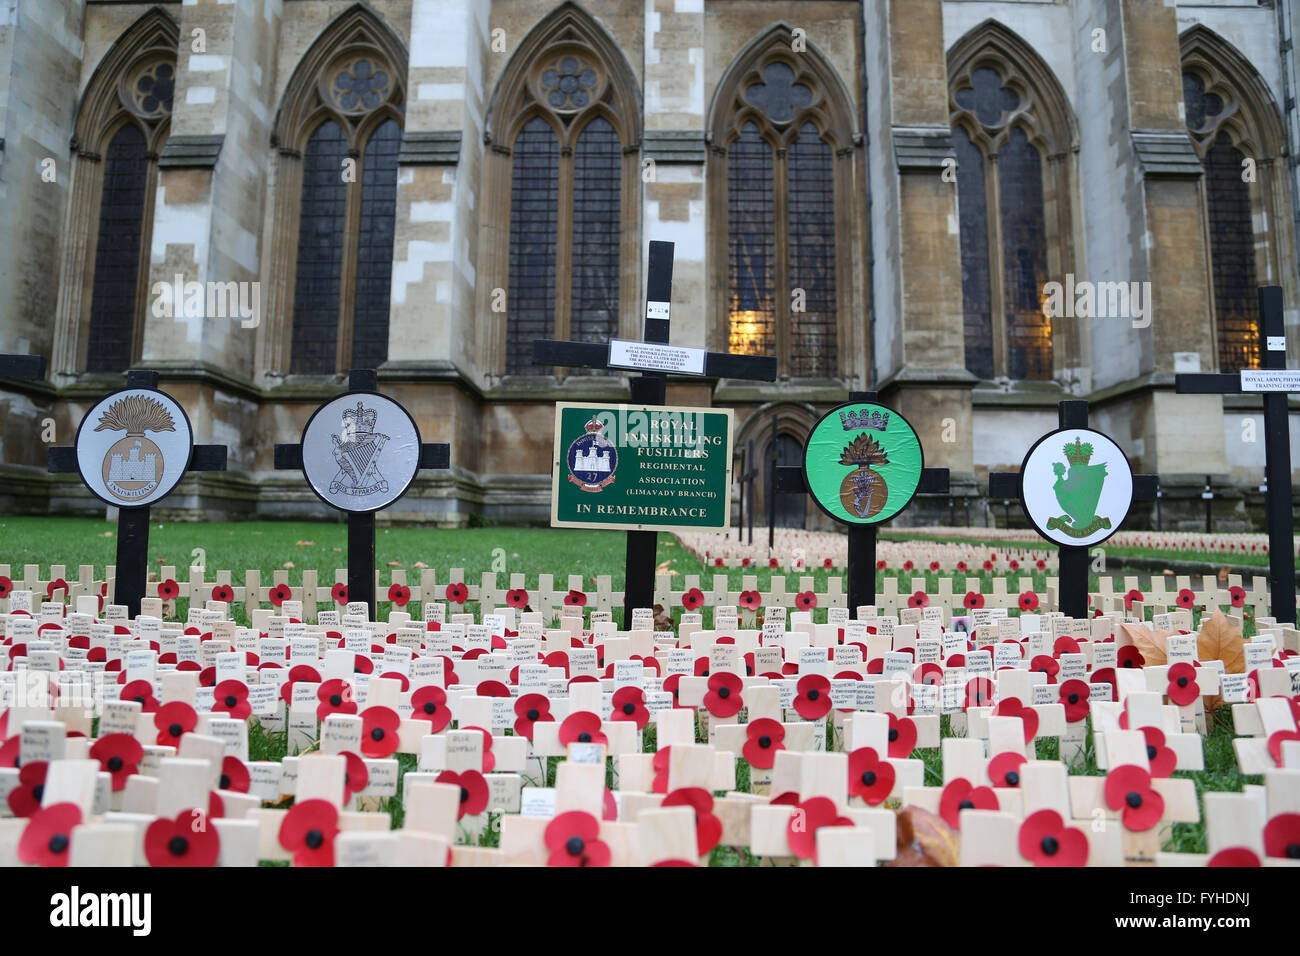 Poppy Day at Westminster Abbey, where UK celebrates and mourns its fallen military heroes with thousands of poppys. - Stock Image